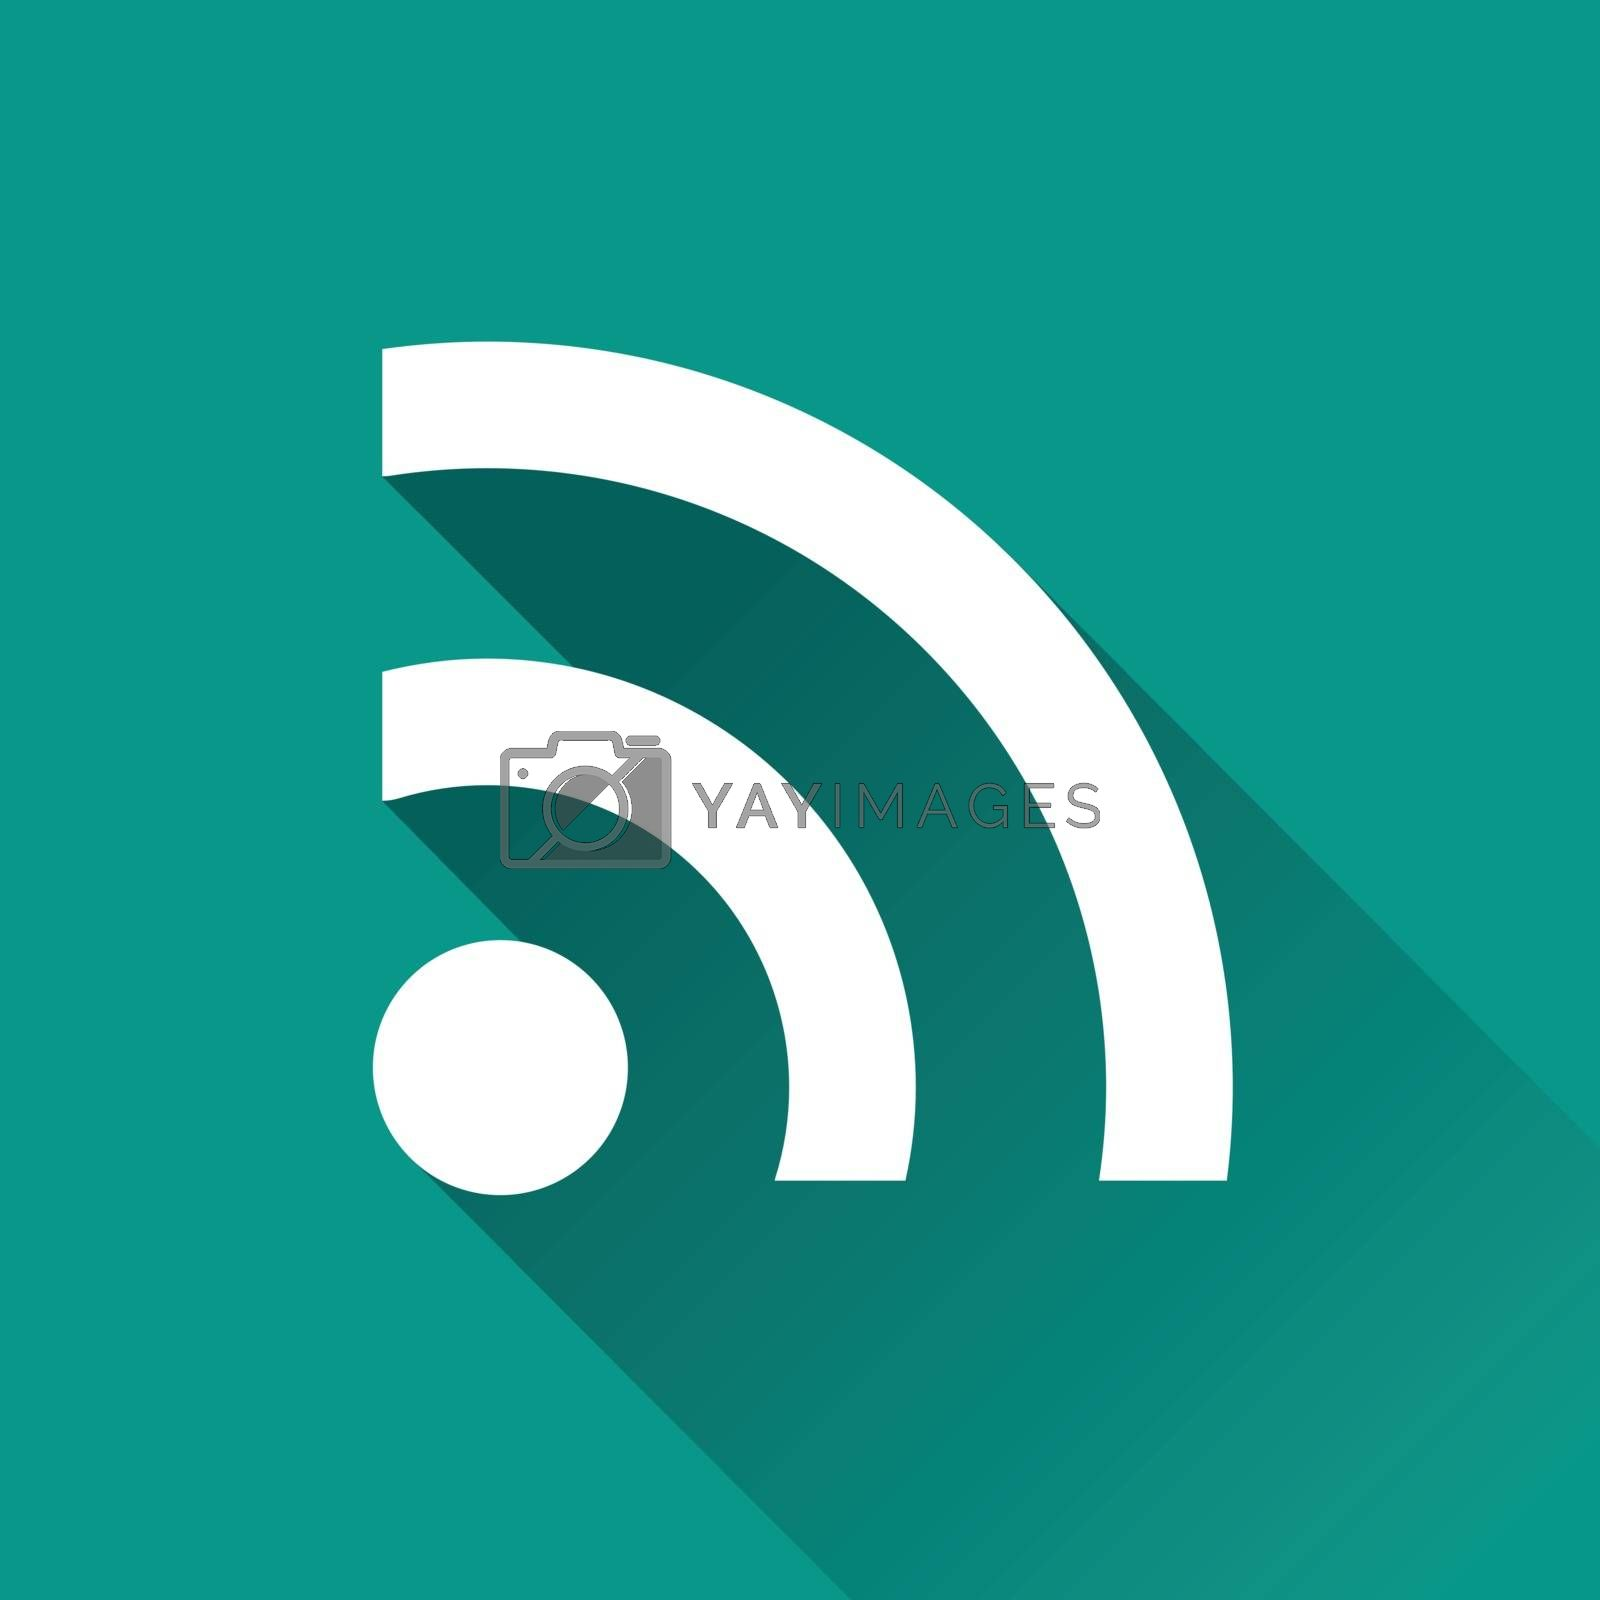 Royalty free image of wifi signal flat design icon by nickylarson974